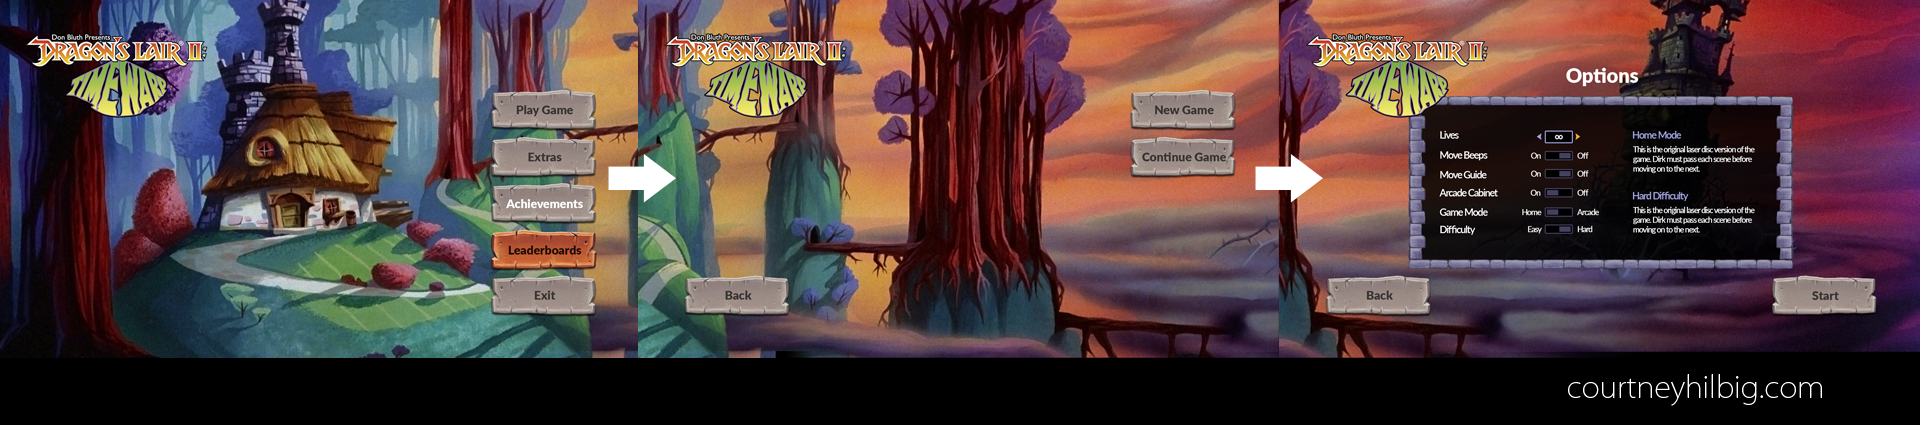 Panoramic Main Menu